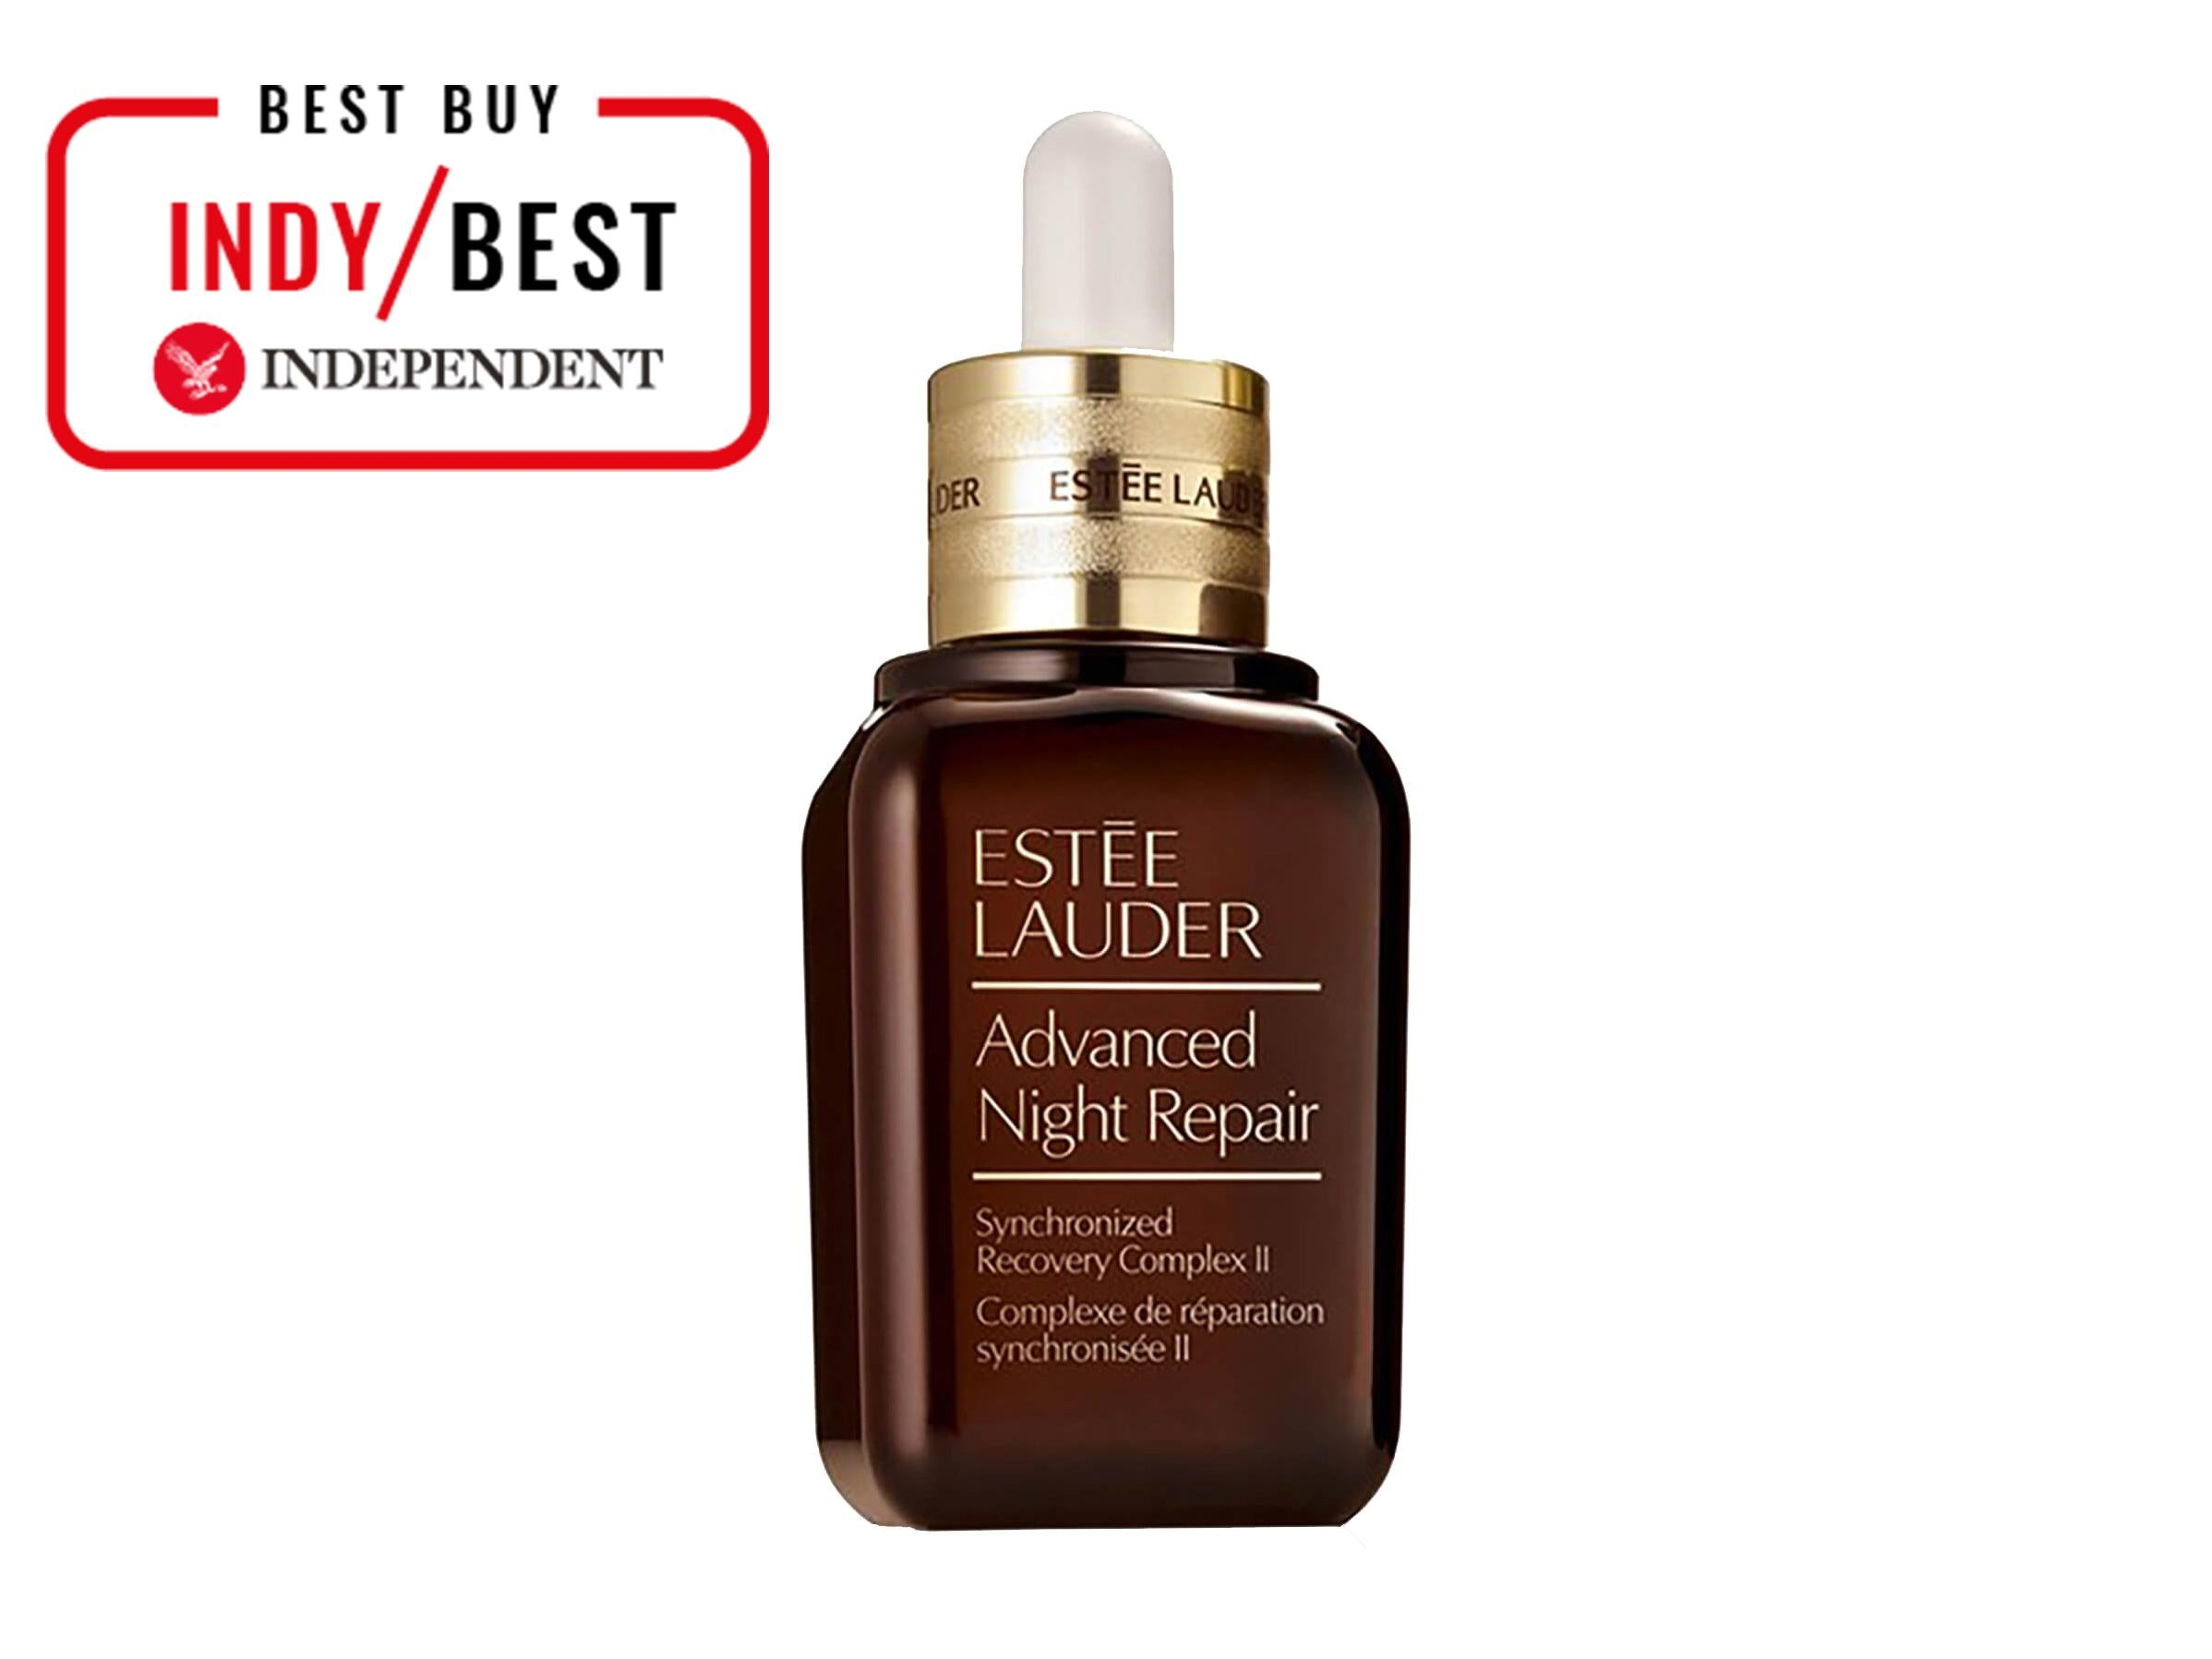 8b325d45efff 9 best anti-ageing serums | The Independent